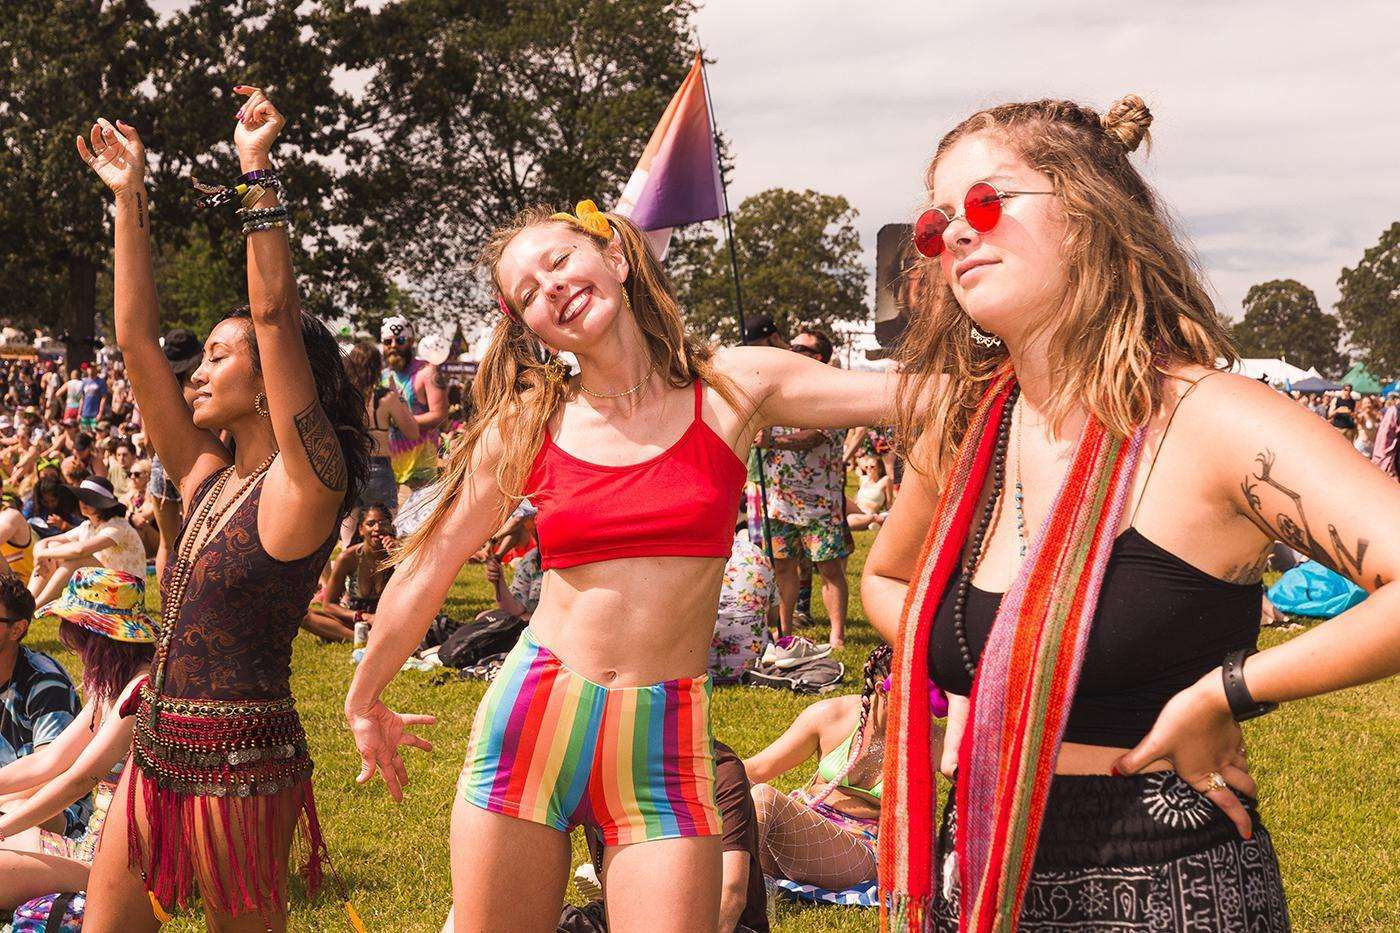 Millennials are going into debt to attend music festivals